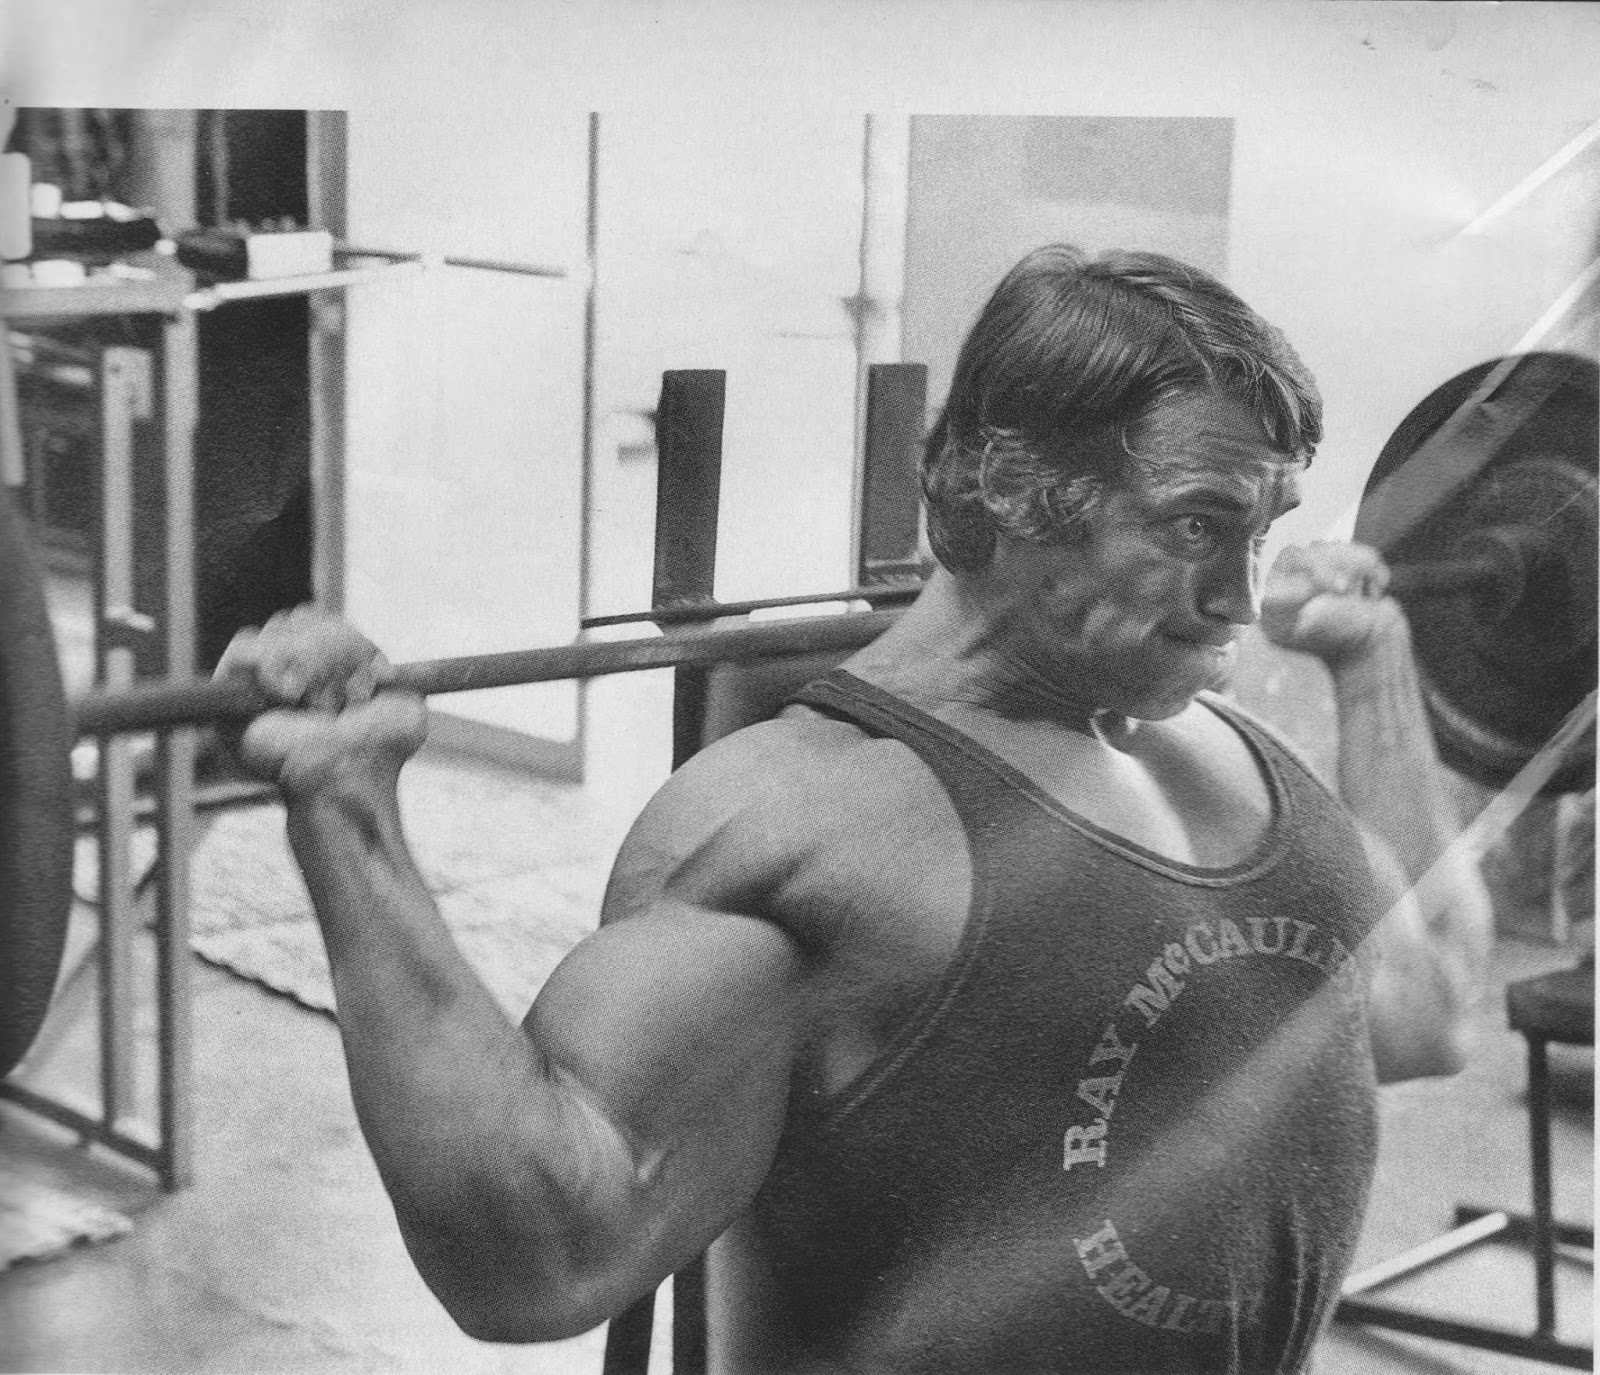 The Tight Tan Slacks Of Dezso Ban Shoulder Training